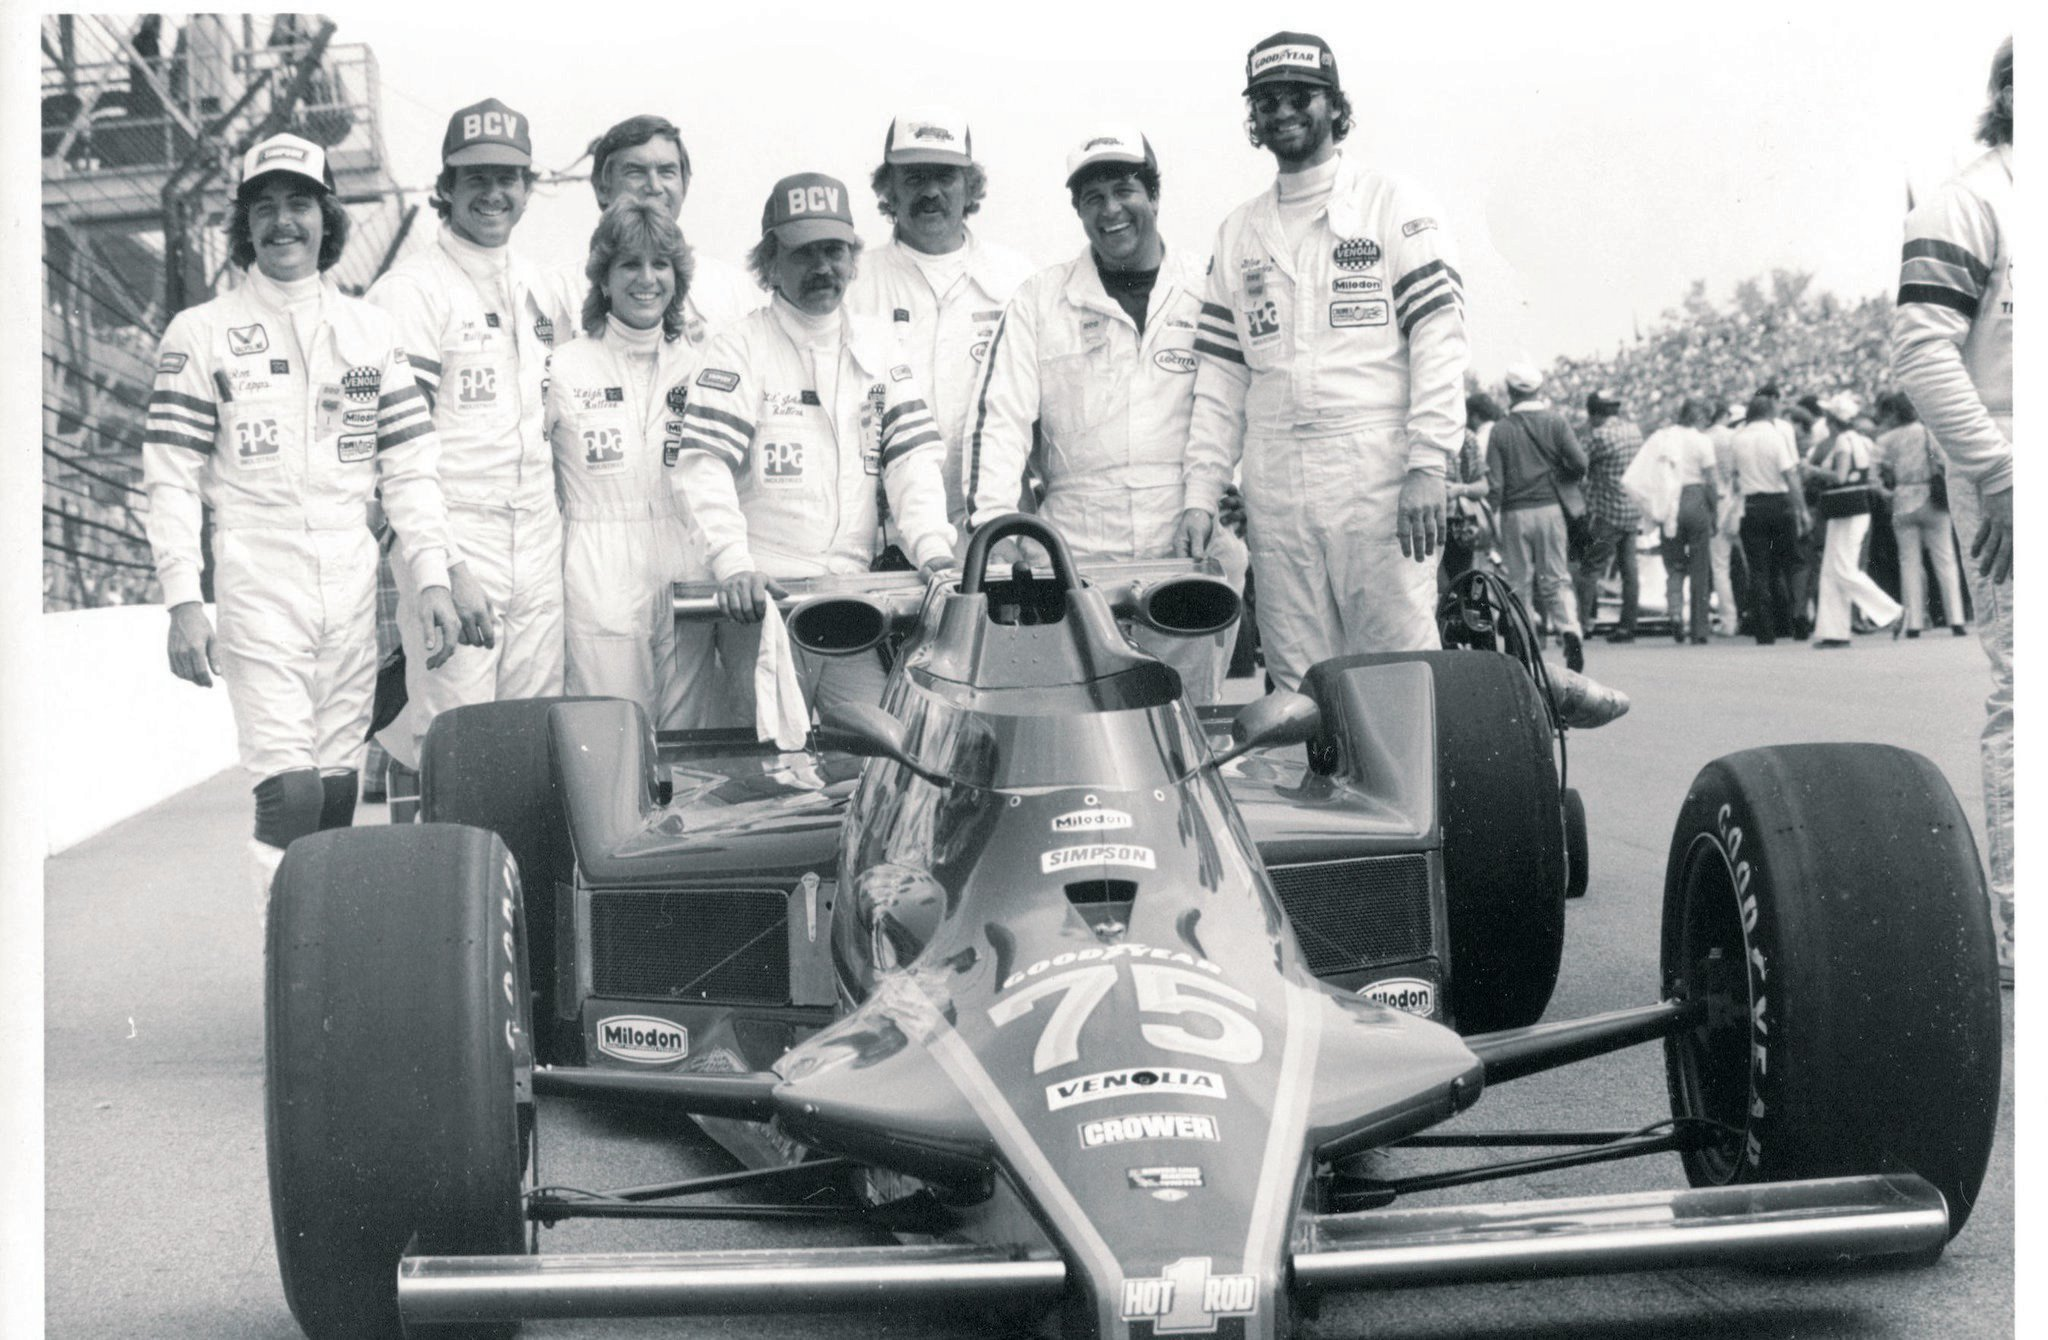 """""""Buttera brought me back to Indy three times to be on his crew. This was the first one, 1982. Dennis Firestone qualified, but we lost a flywheel on the 32nd lap. I recognize Ronnie Capps left, Leigh and John Buttera, Glen Sanders right, and myself, in between Li'l' John and Dennis Varni. I don't remember who stuck that HOT ROD sticker on the nose."""""""